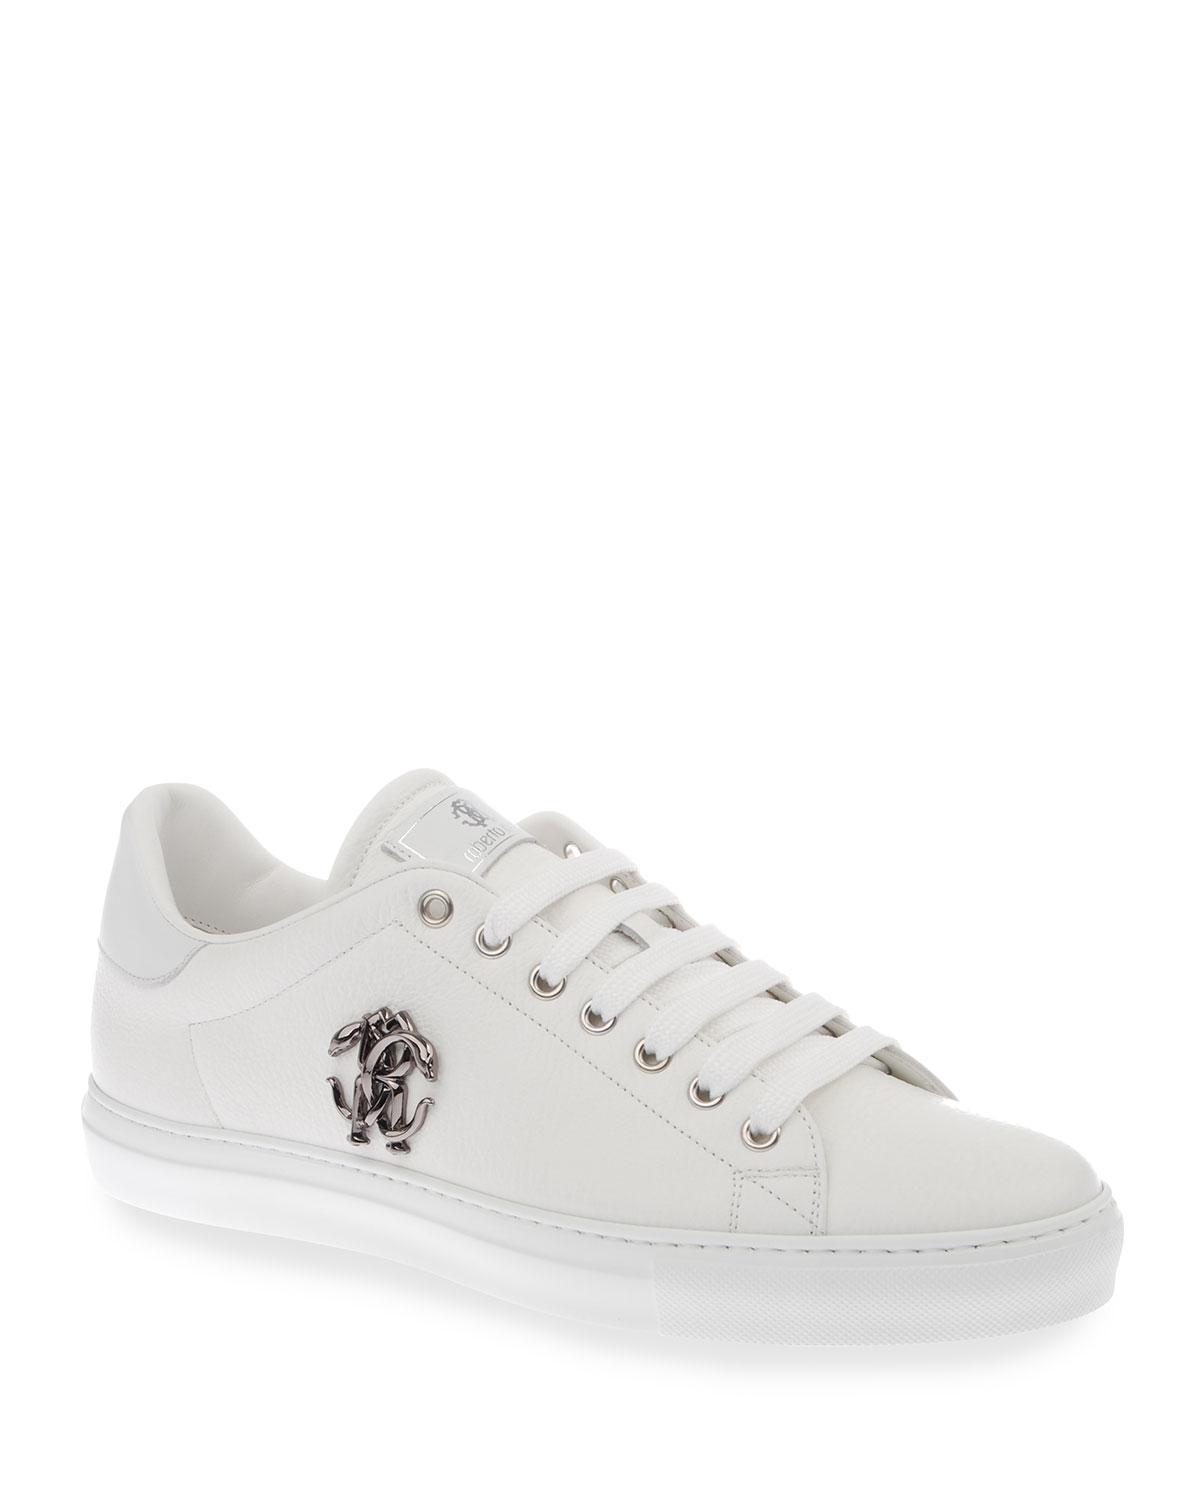 Men's Logo Leather Low-Top Sneakers, White